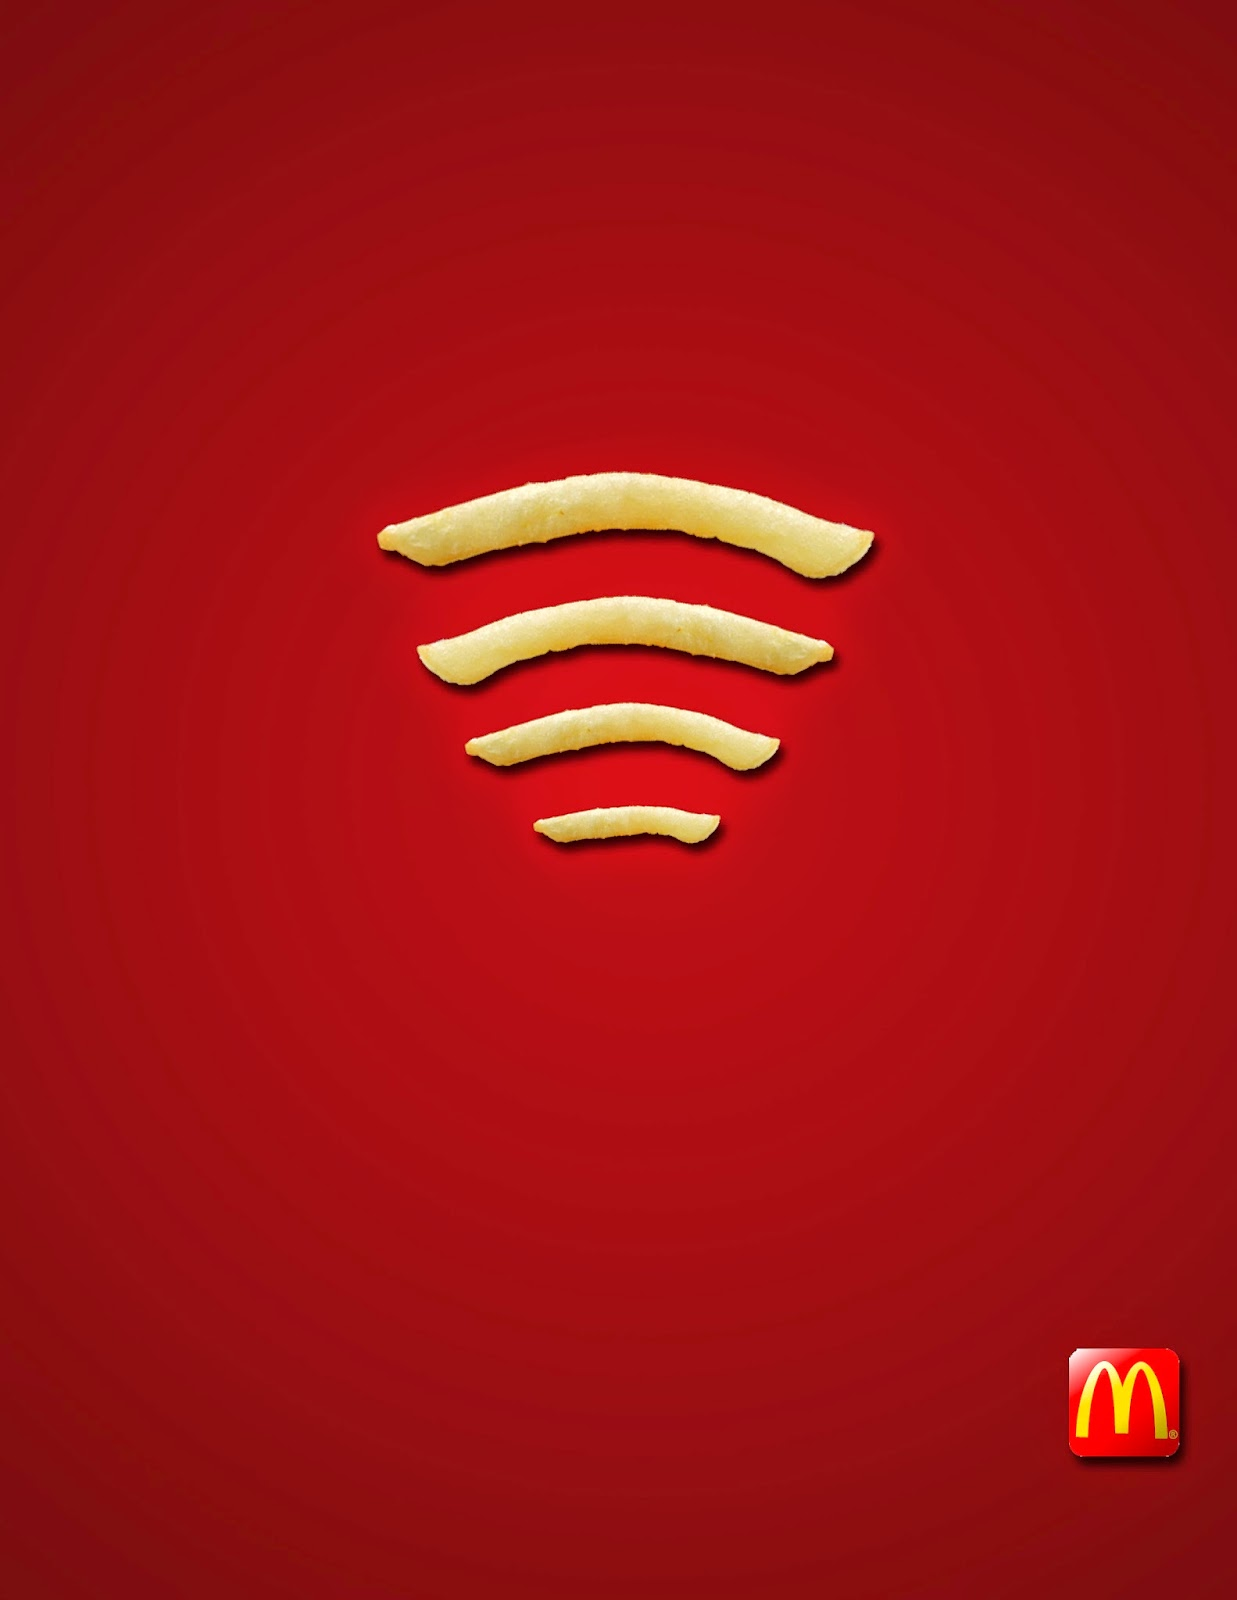 how to connect to mcdonalds free wifi